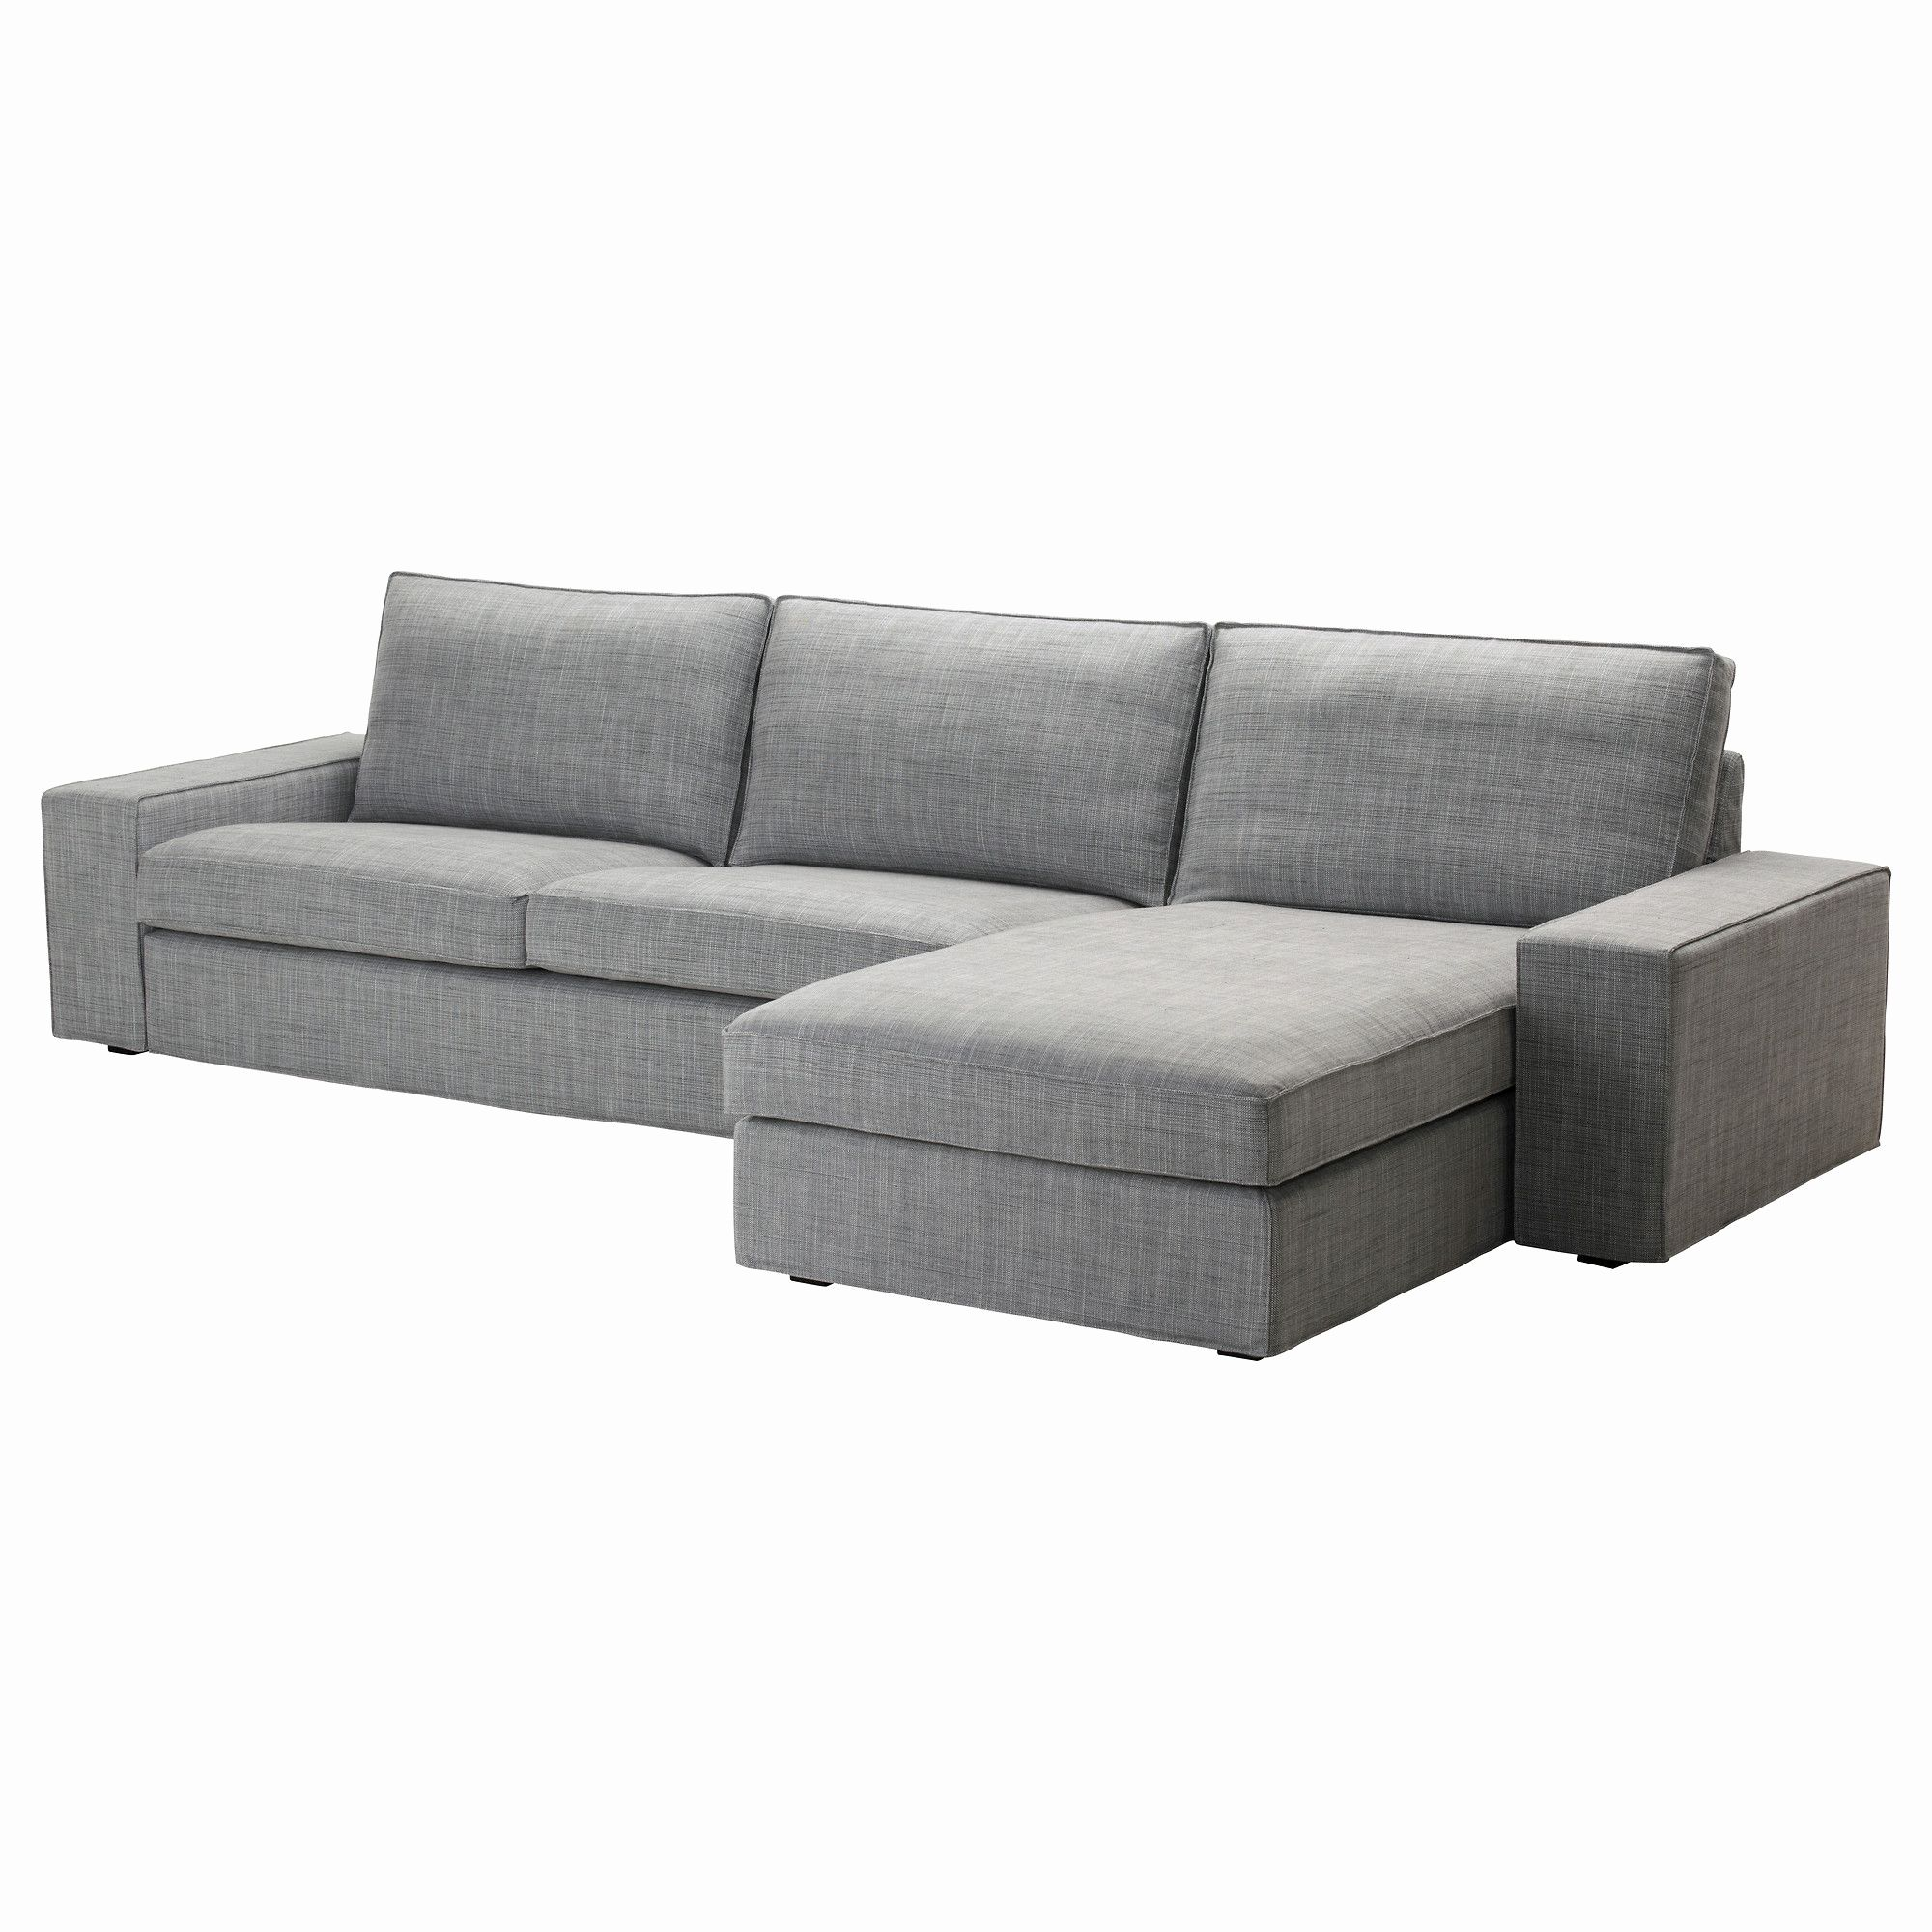 26 Best Of Hagalund Sofa Bed Ikea Ektorp Sofa Ektorp Sofa Couch Mobel